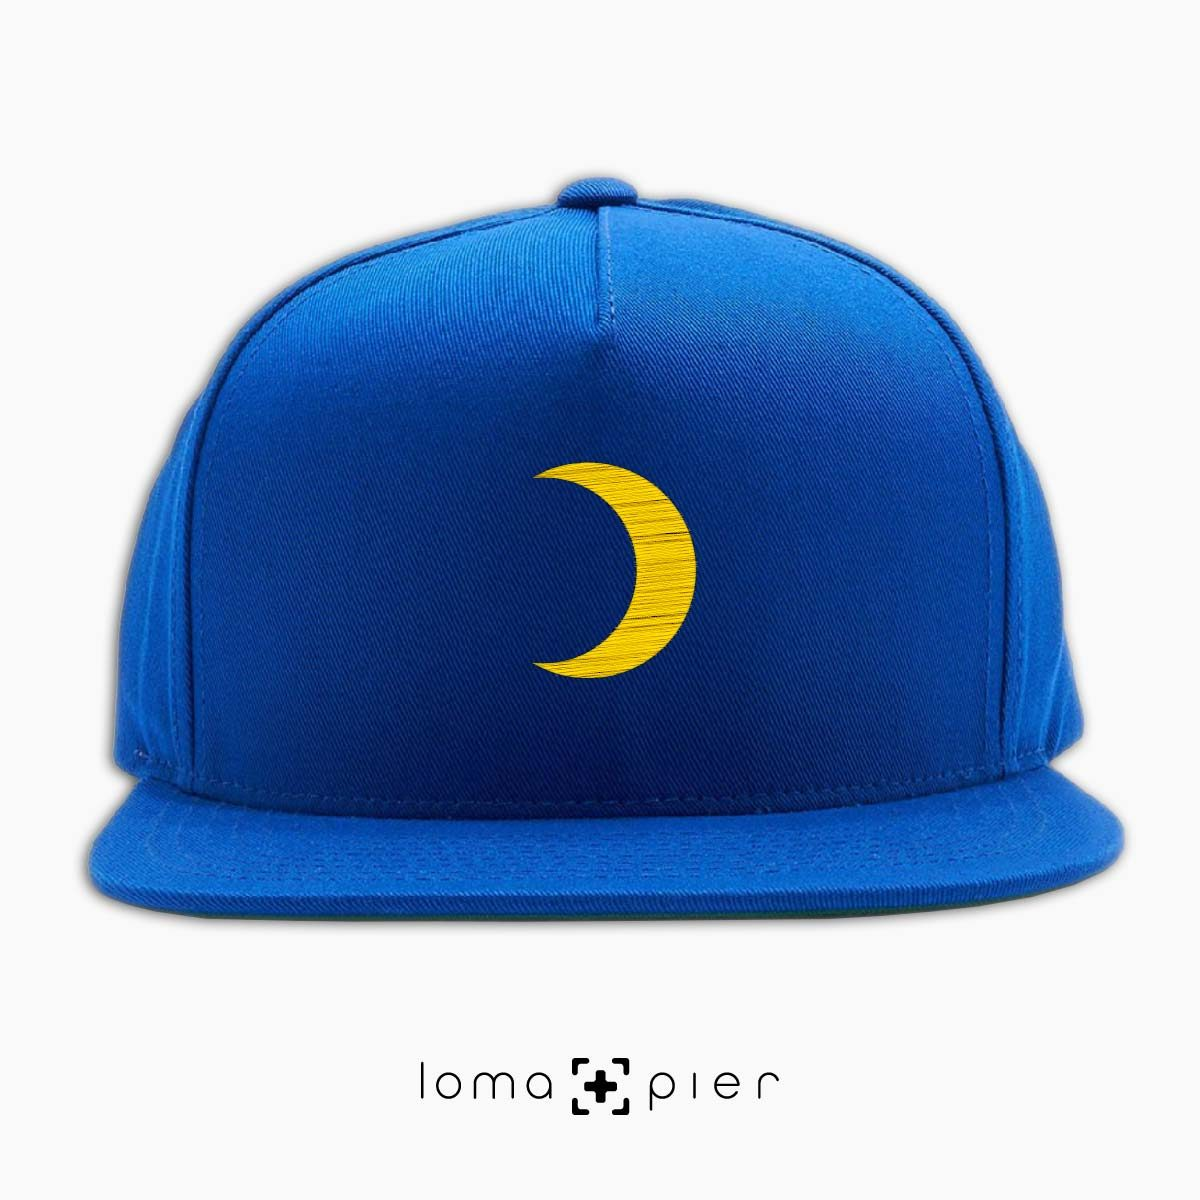 MOON icon embroidered on a blue classic snapback hat by loma+pier hat store